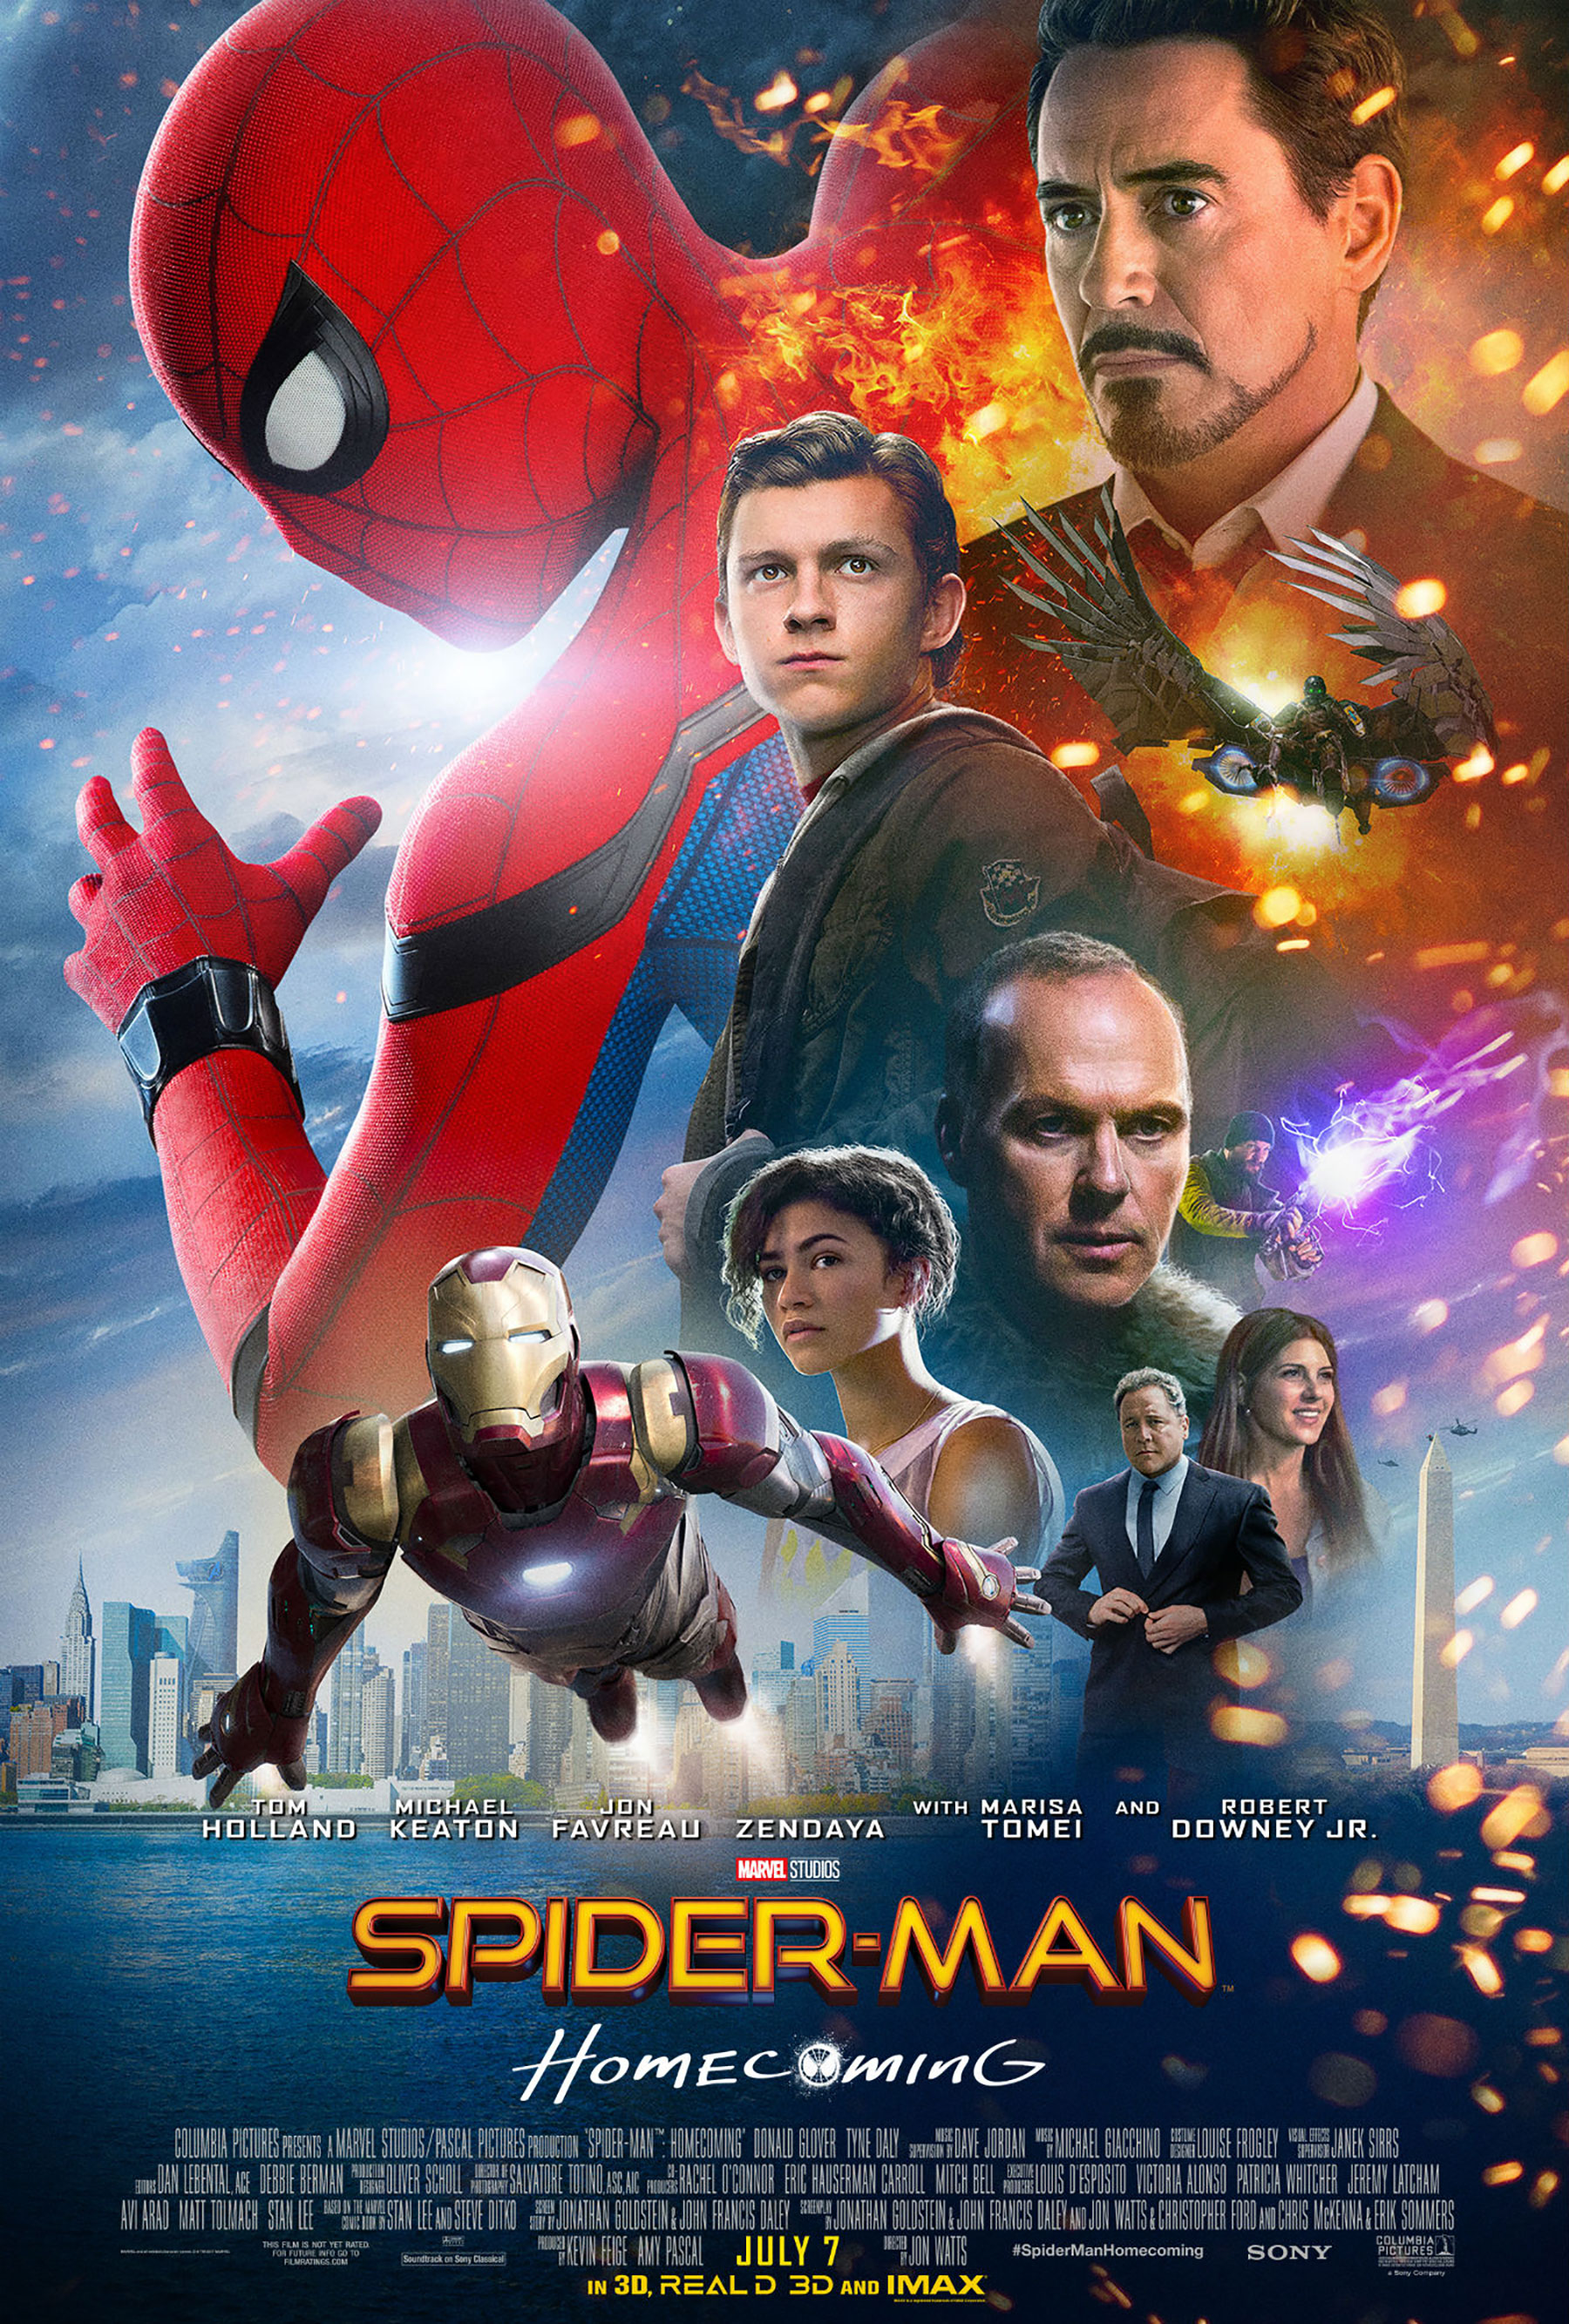 spider-man-homecoming-movie-poster-marvel-cinematic-universe-1038913